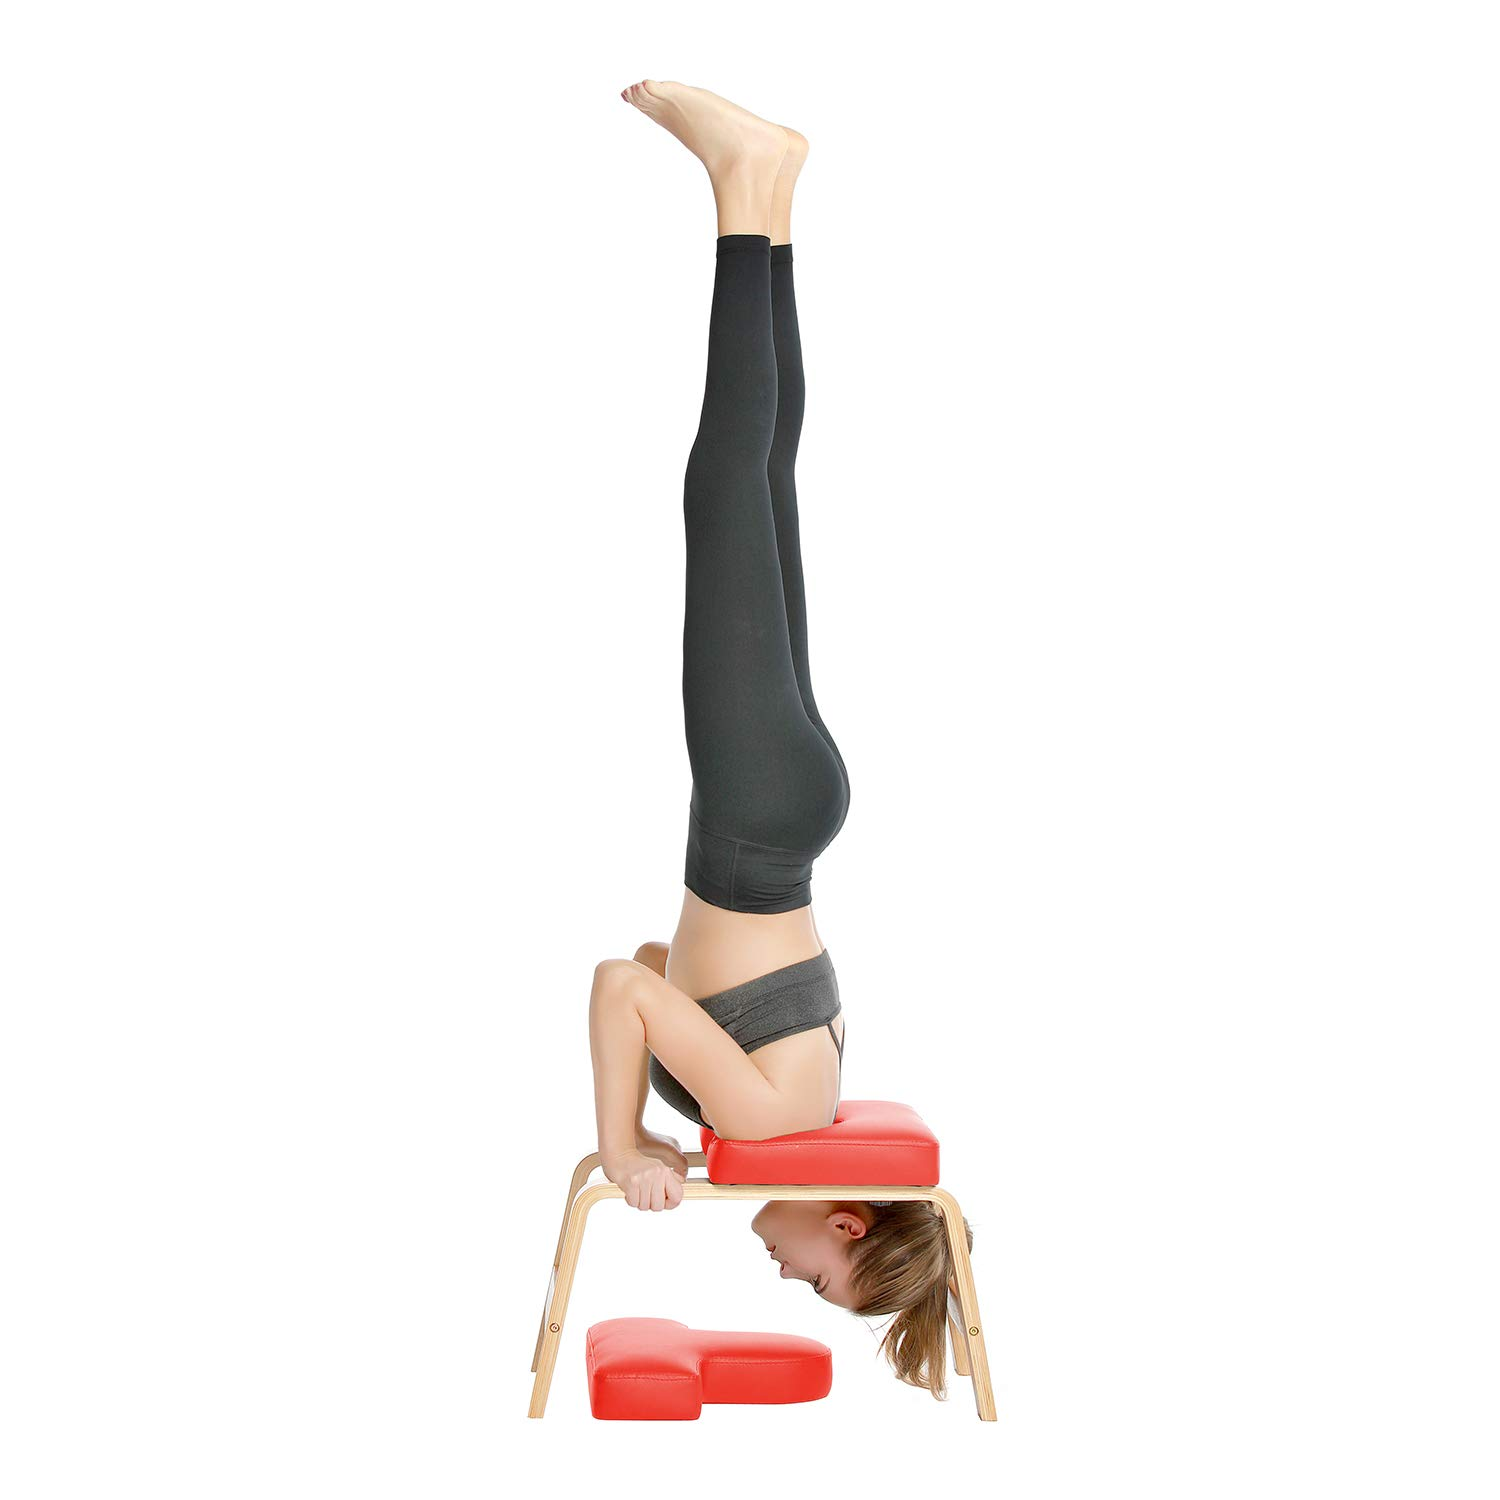 Desire Life Yoga Headstand Bench - Stand Yoga Chair for Family, Gym - Wood and PU Pads - Relieve Fatigue and Build Up Body (Red) by Desire Life (Image #1)